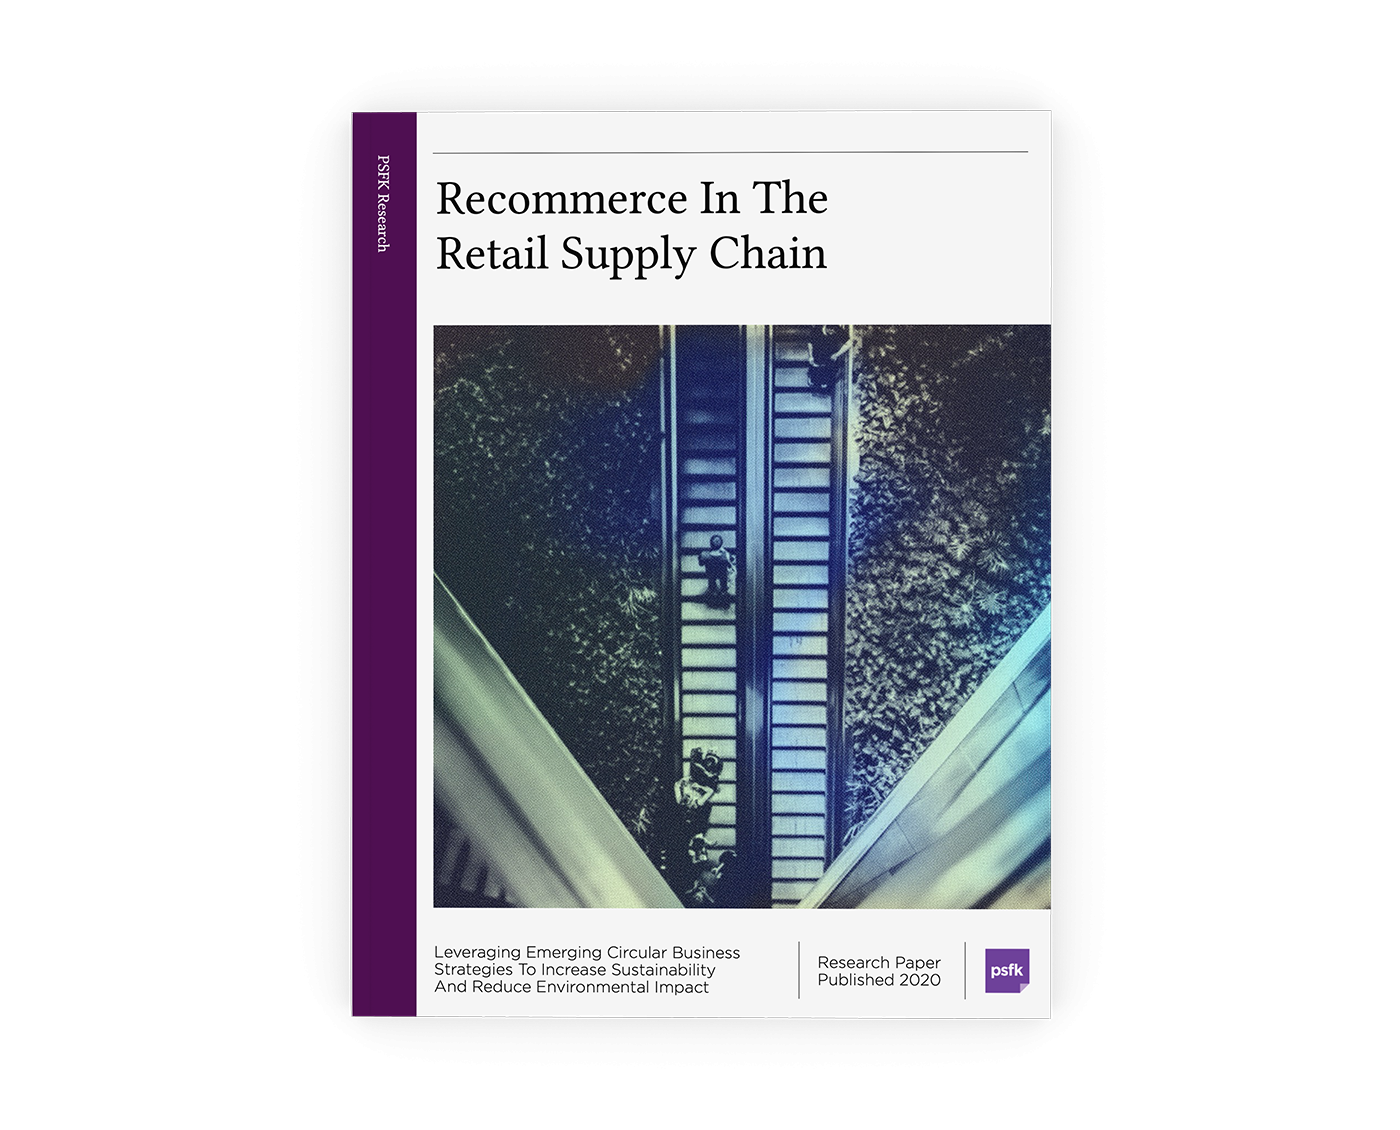 Recommerce In The Retail Supply Chain